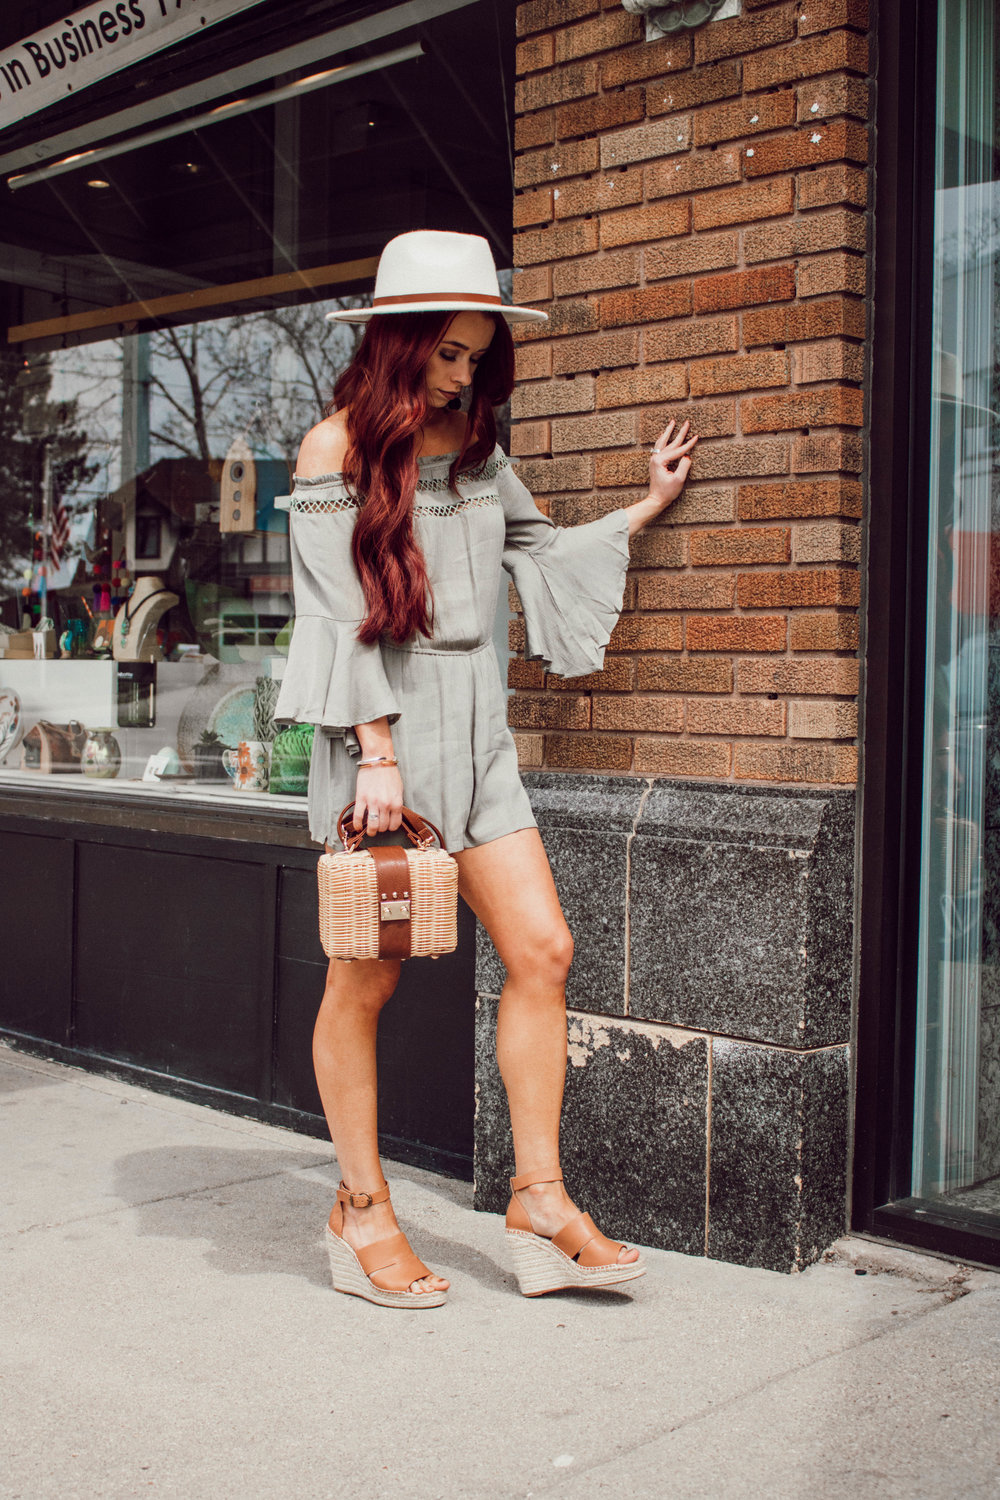 Olive Spring Outfit with Harper and Sky by popular Indianapolis fashion blogger Trendy in Indy